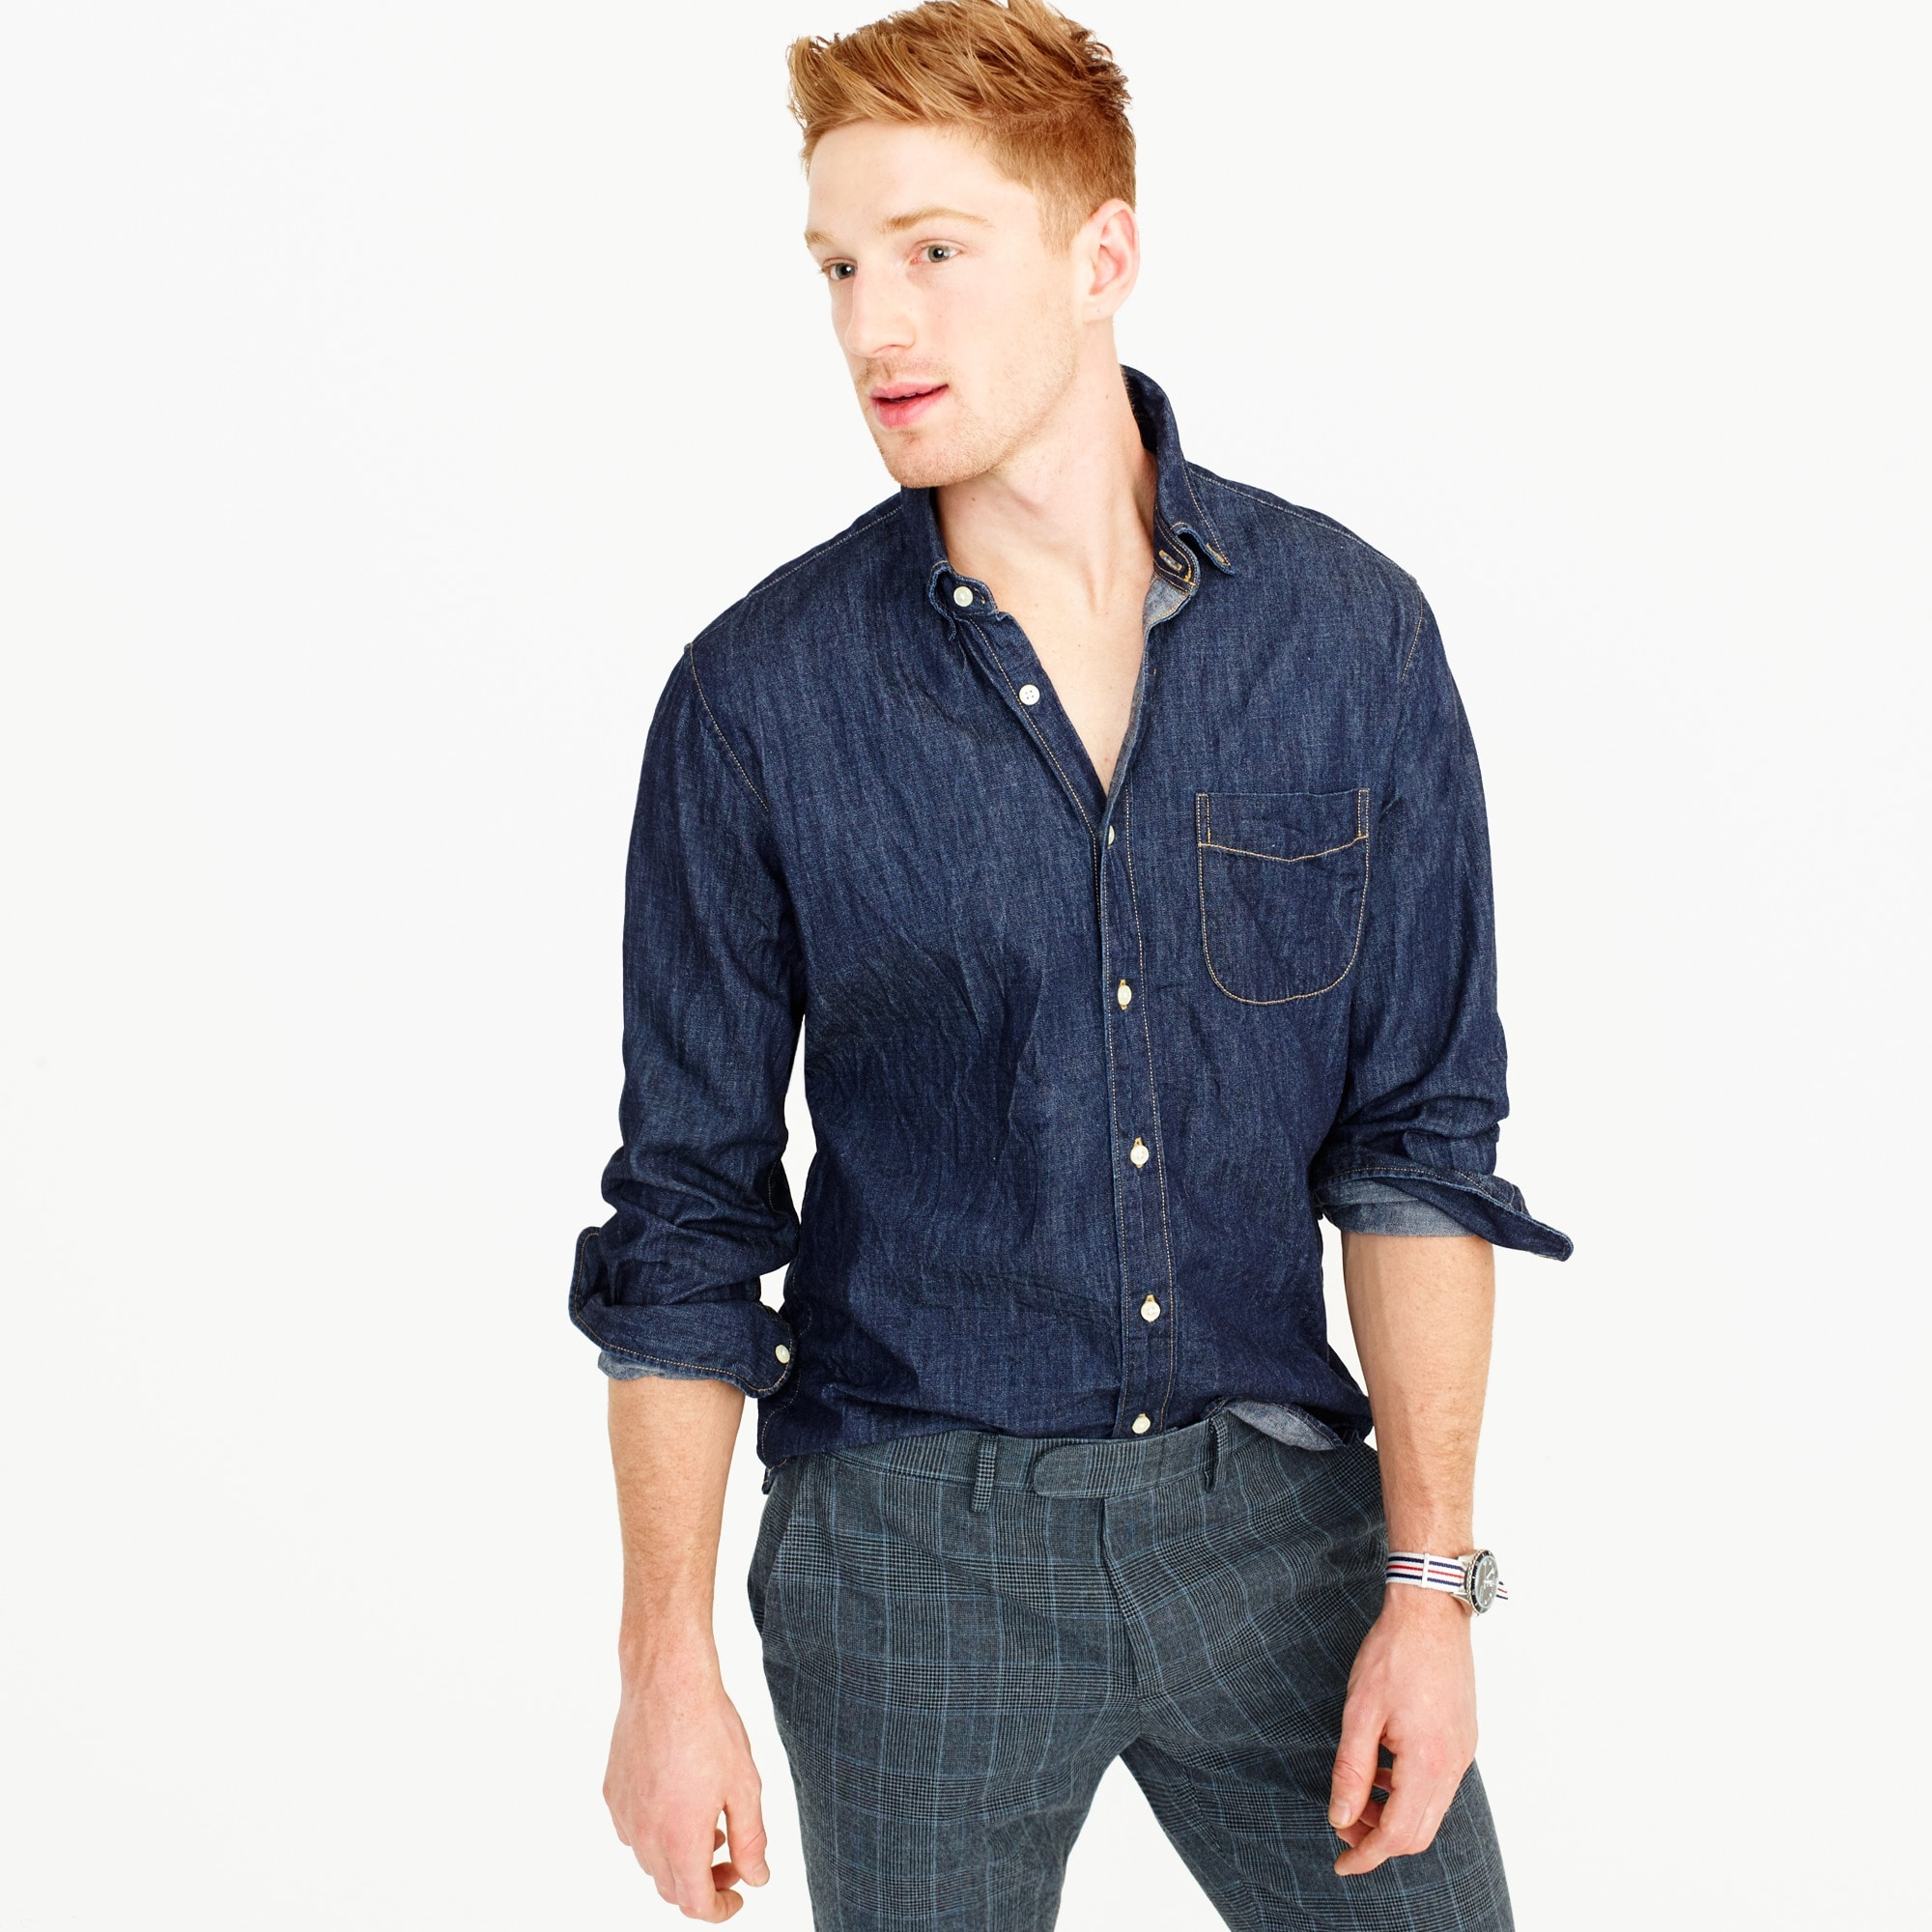 mens Lightweight denim shirt in dark wash